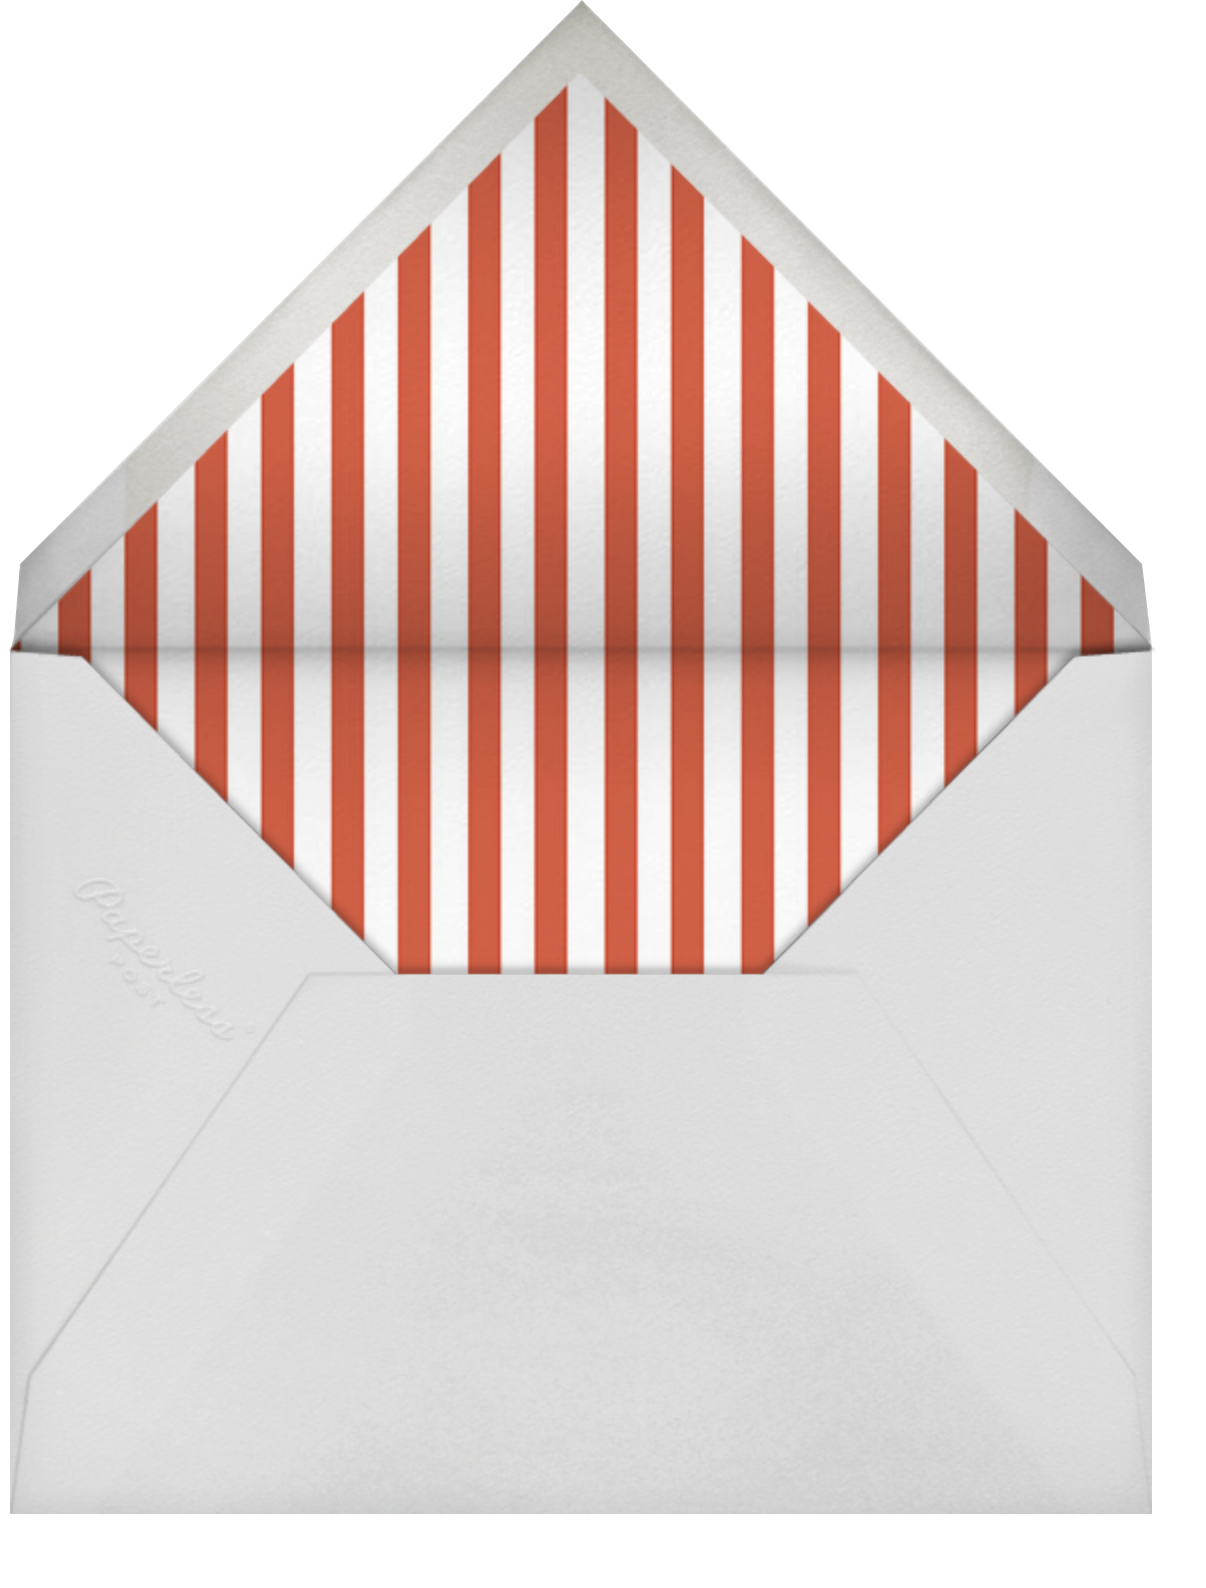 Table Tennis - Backspin - Paperless Post - Sports - envelope back